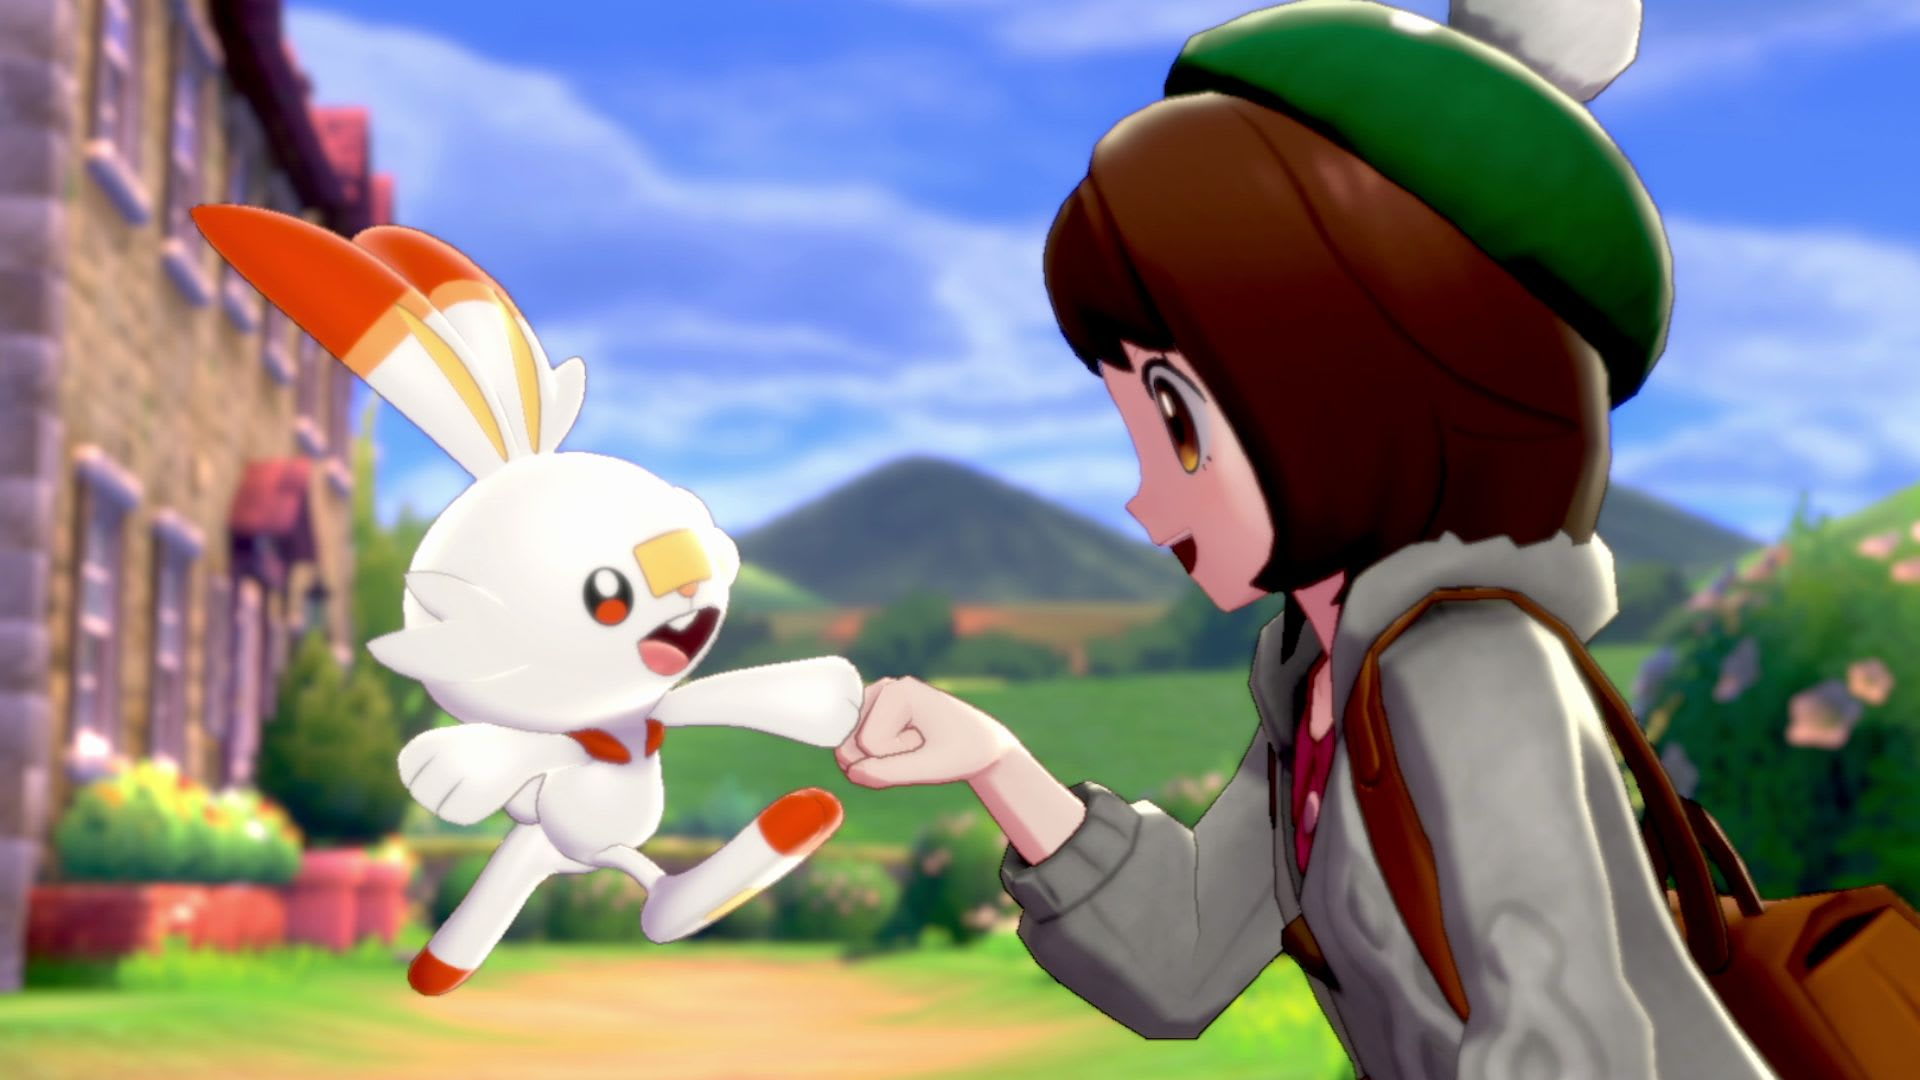 Dynamaxing a corgi in 'Pokémon Sword' and 'Shield'